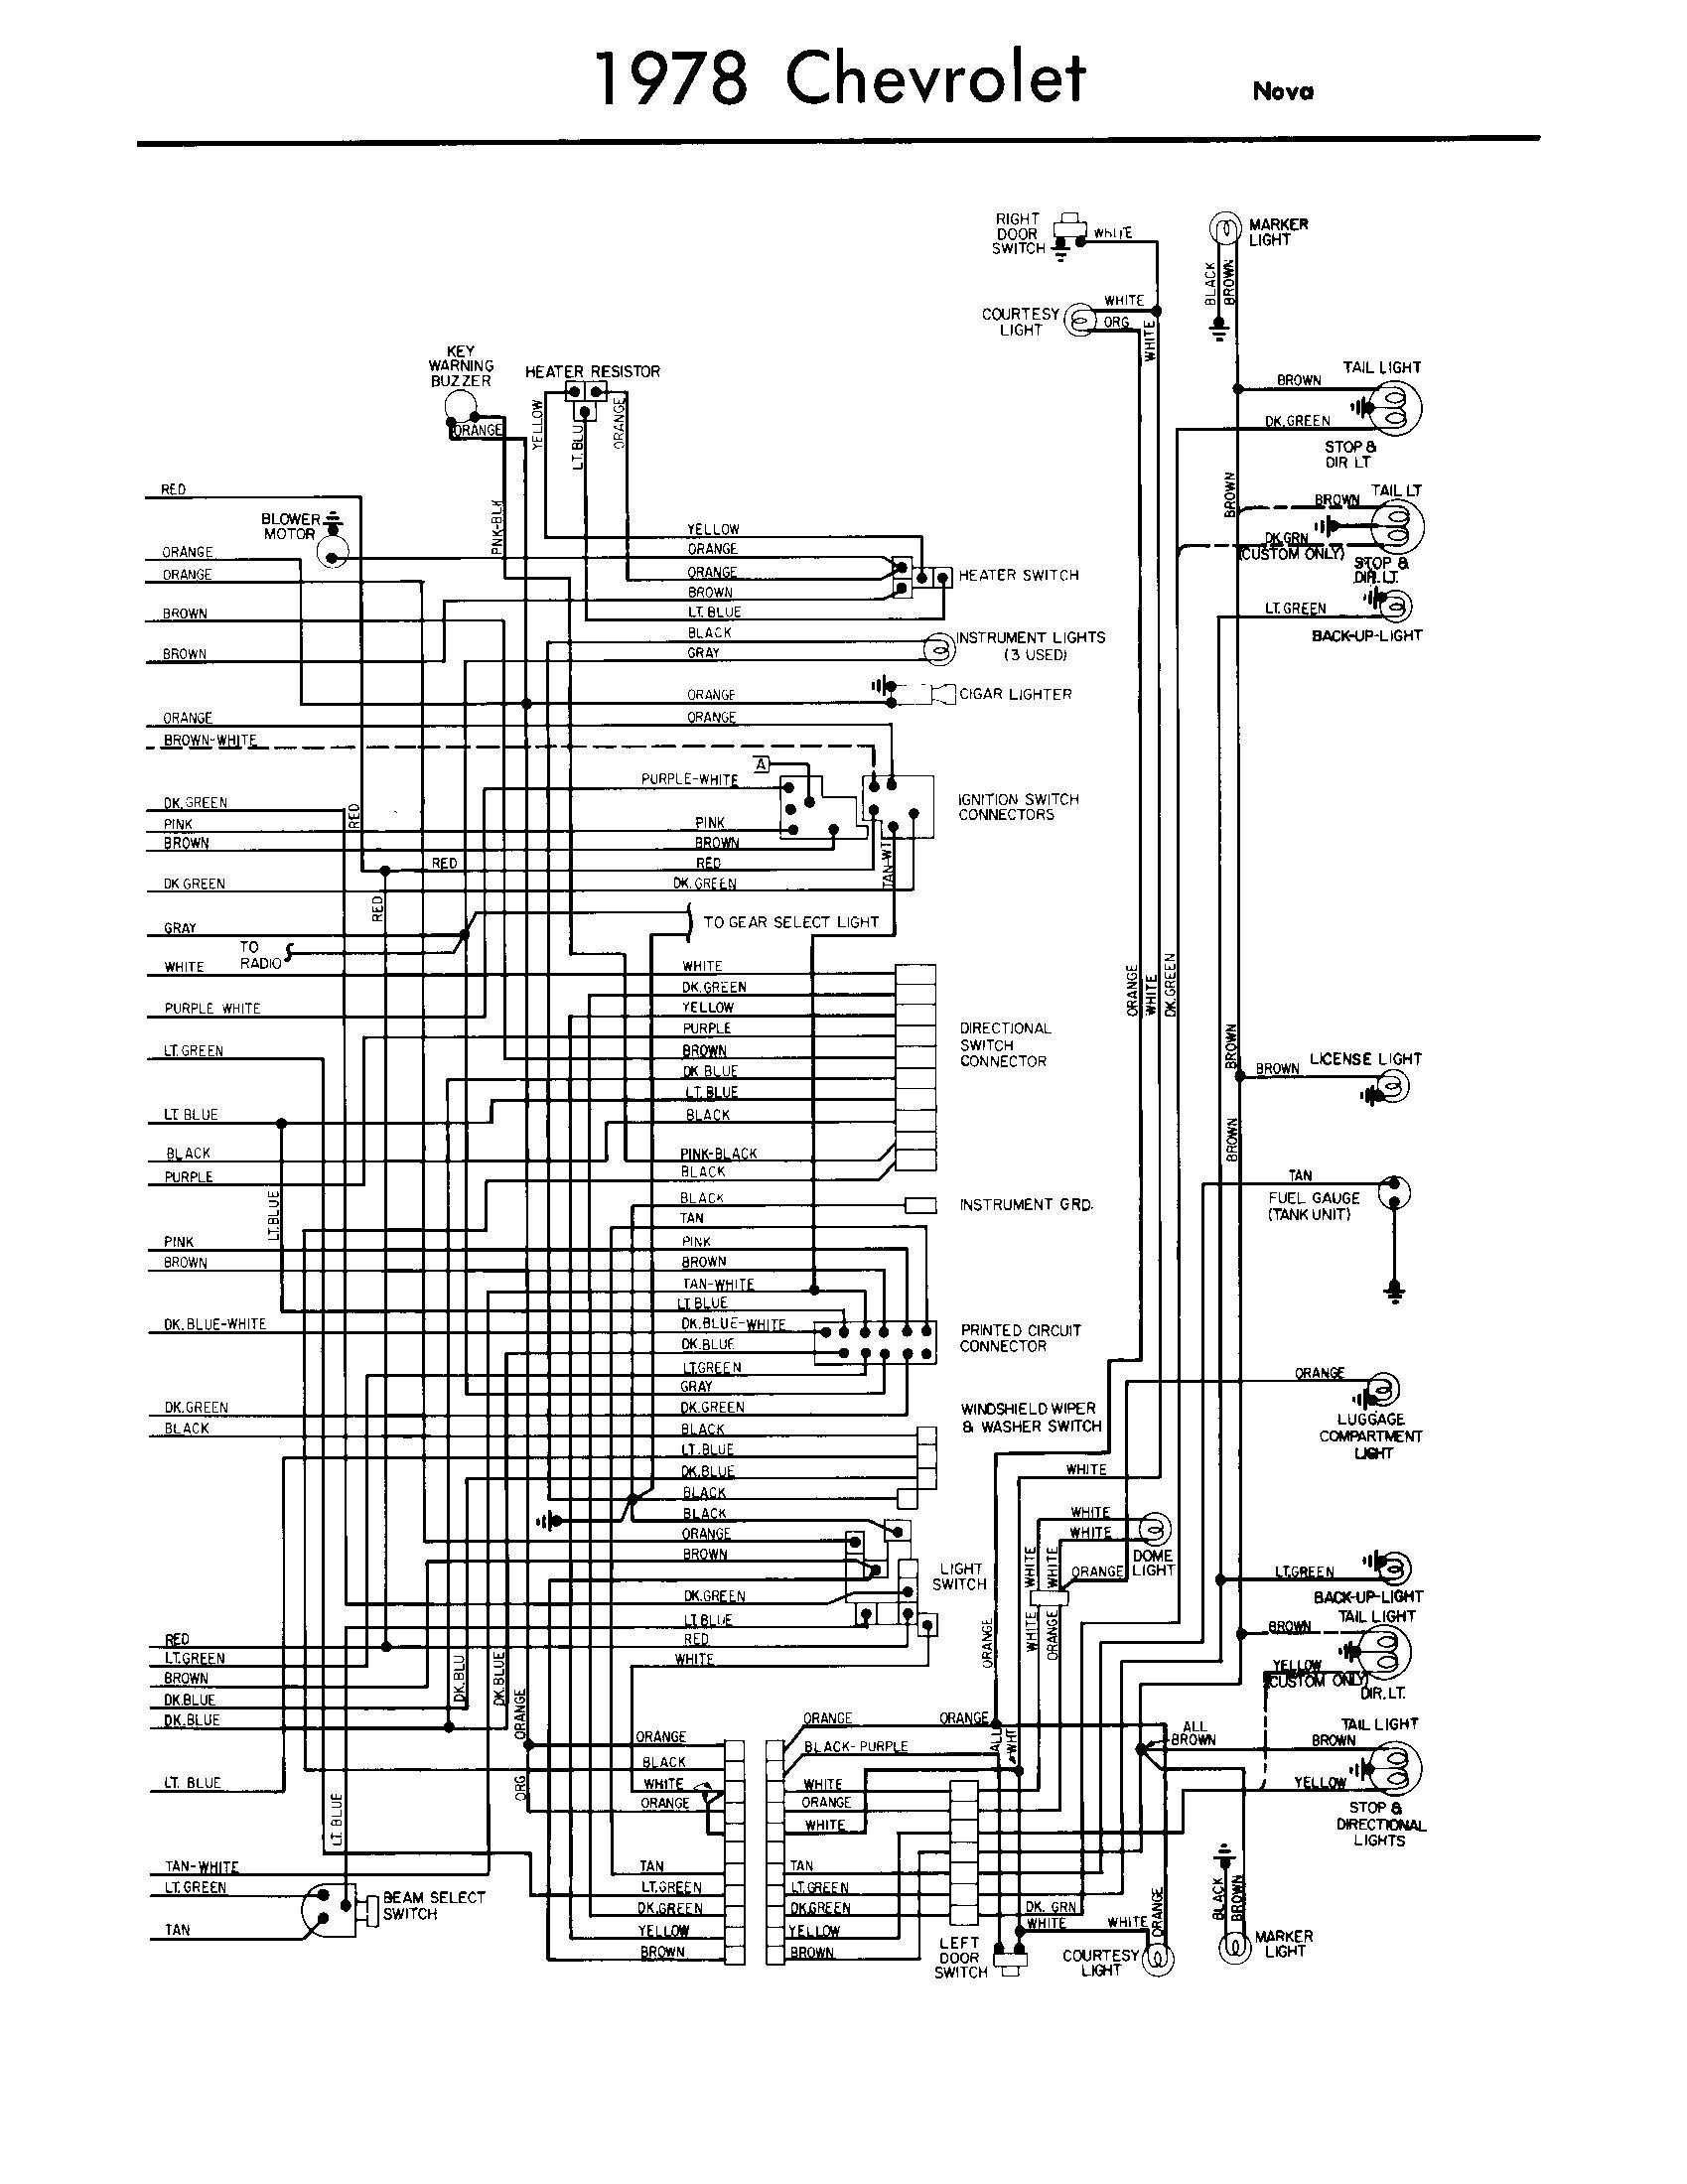 77 corvette frame diagram free download wiring diagram schematic rh onzegroup co 1978 c10 wiring diagram